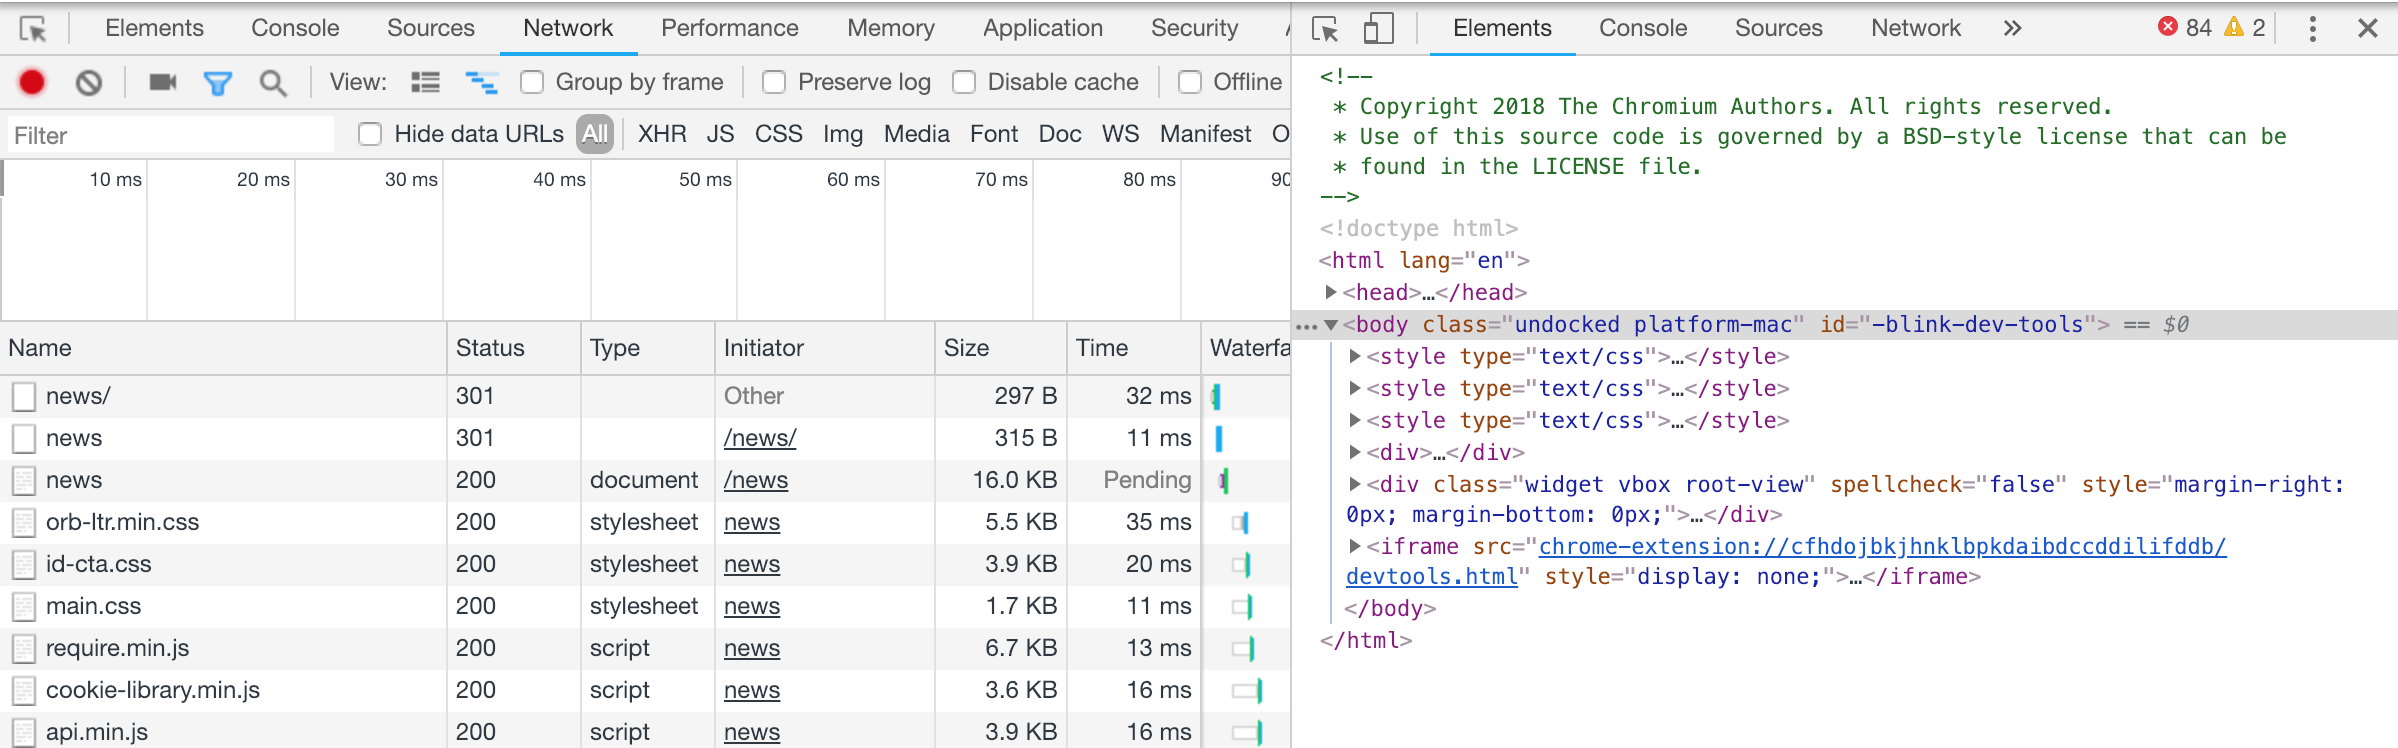 Using Puppeteer to interact with the Devtools UI (Hack